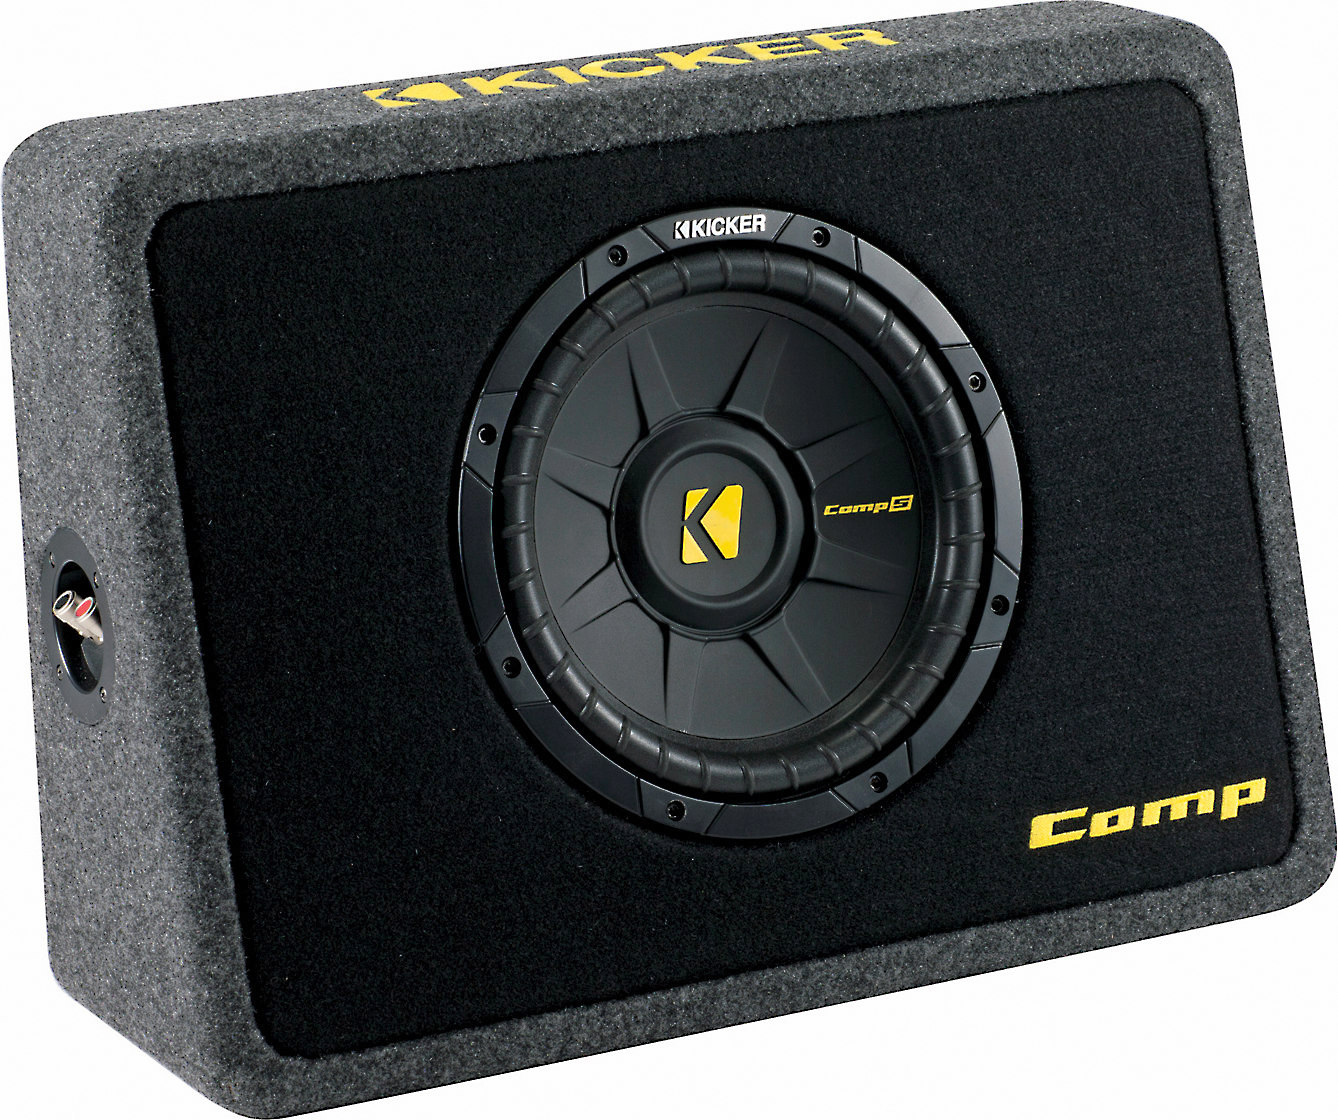 hight resolution of kicker 40tcws104 ported truck enclosure with one 4 ohm 10 comps subwoofer at crutchfield